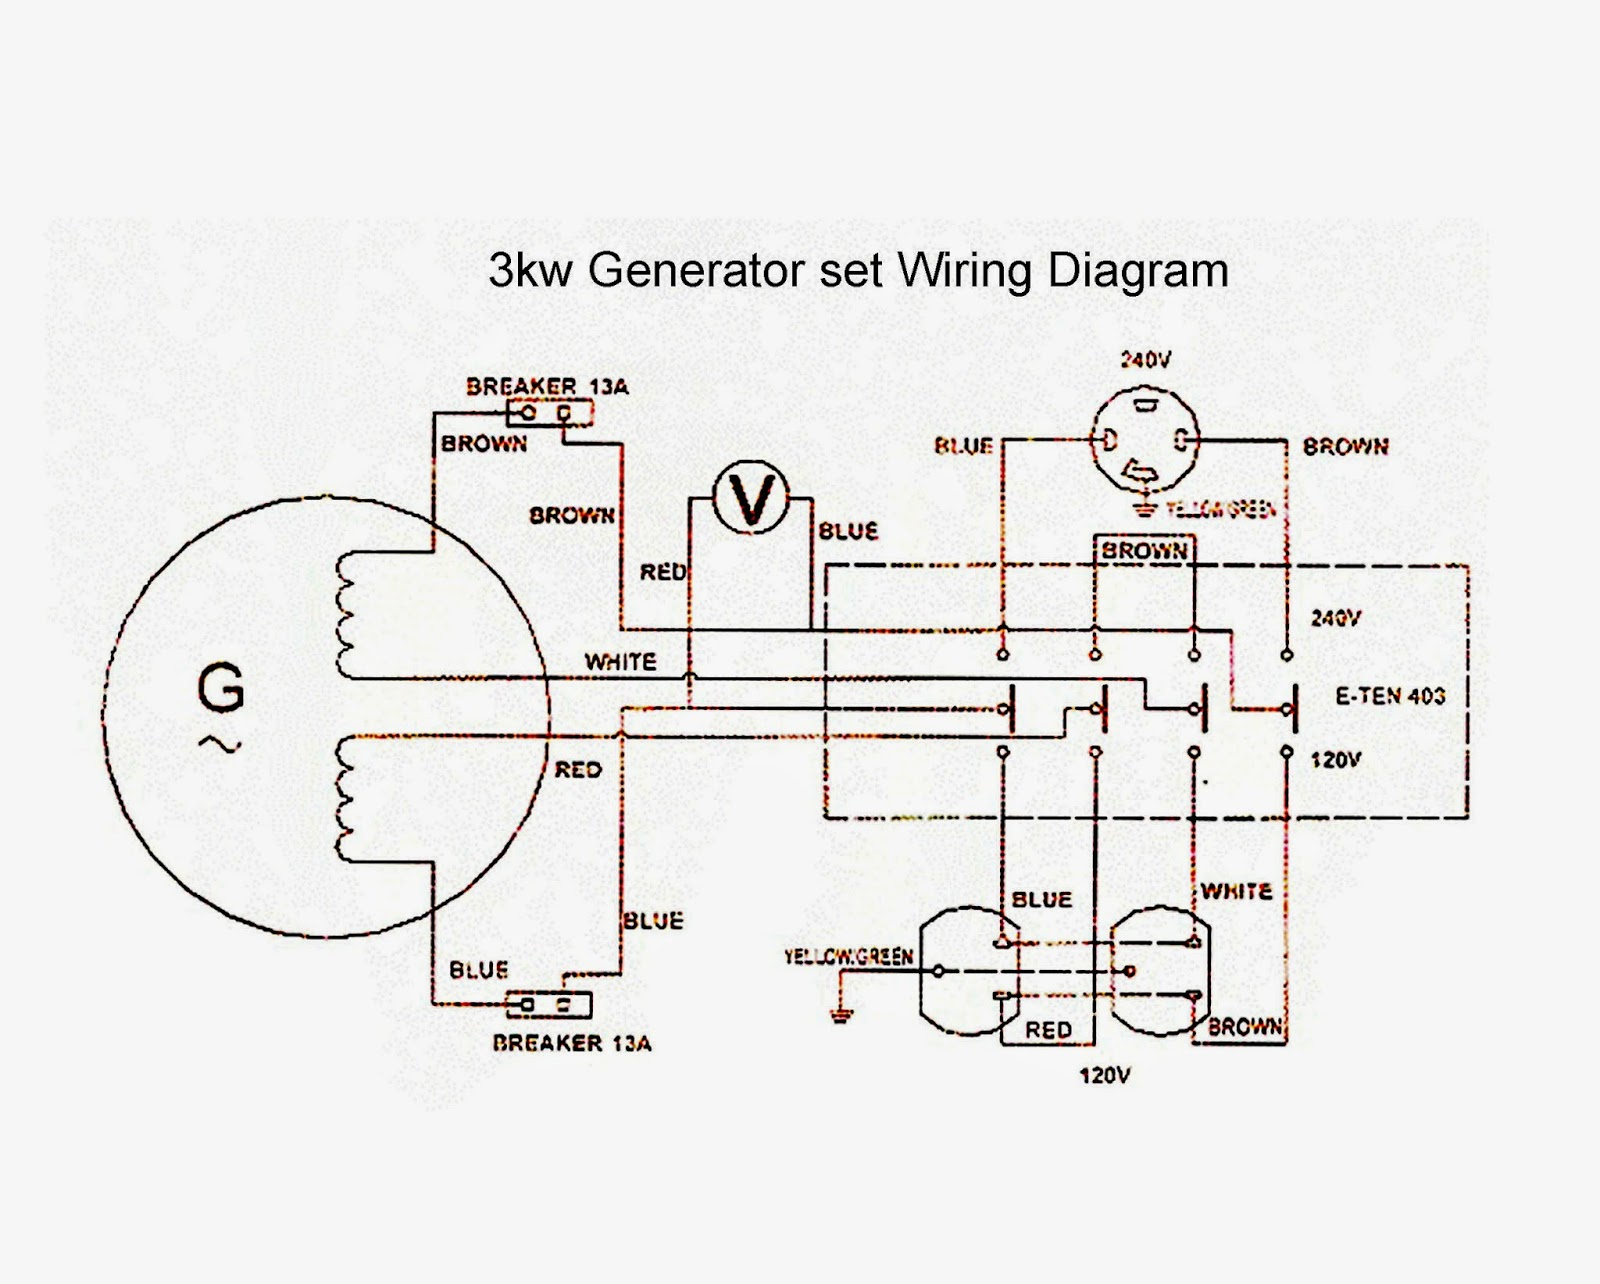 house wiring diagram freeware wiring diagram advance free home wiring diagram software home wiring diagram freeware [ 1600 x 1284 Pixel ]